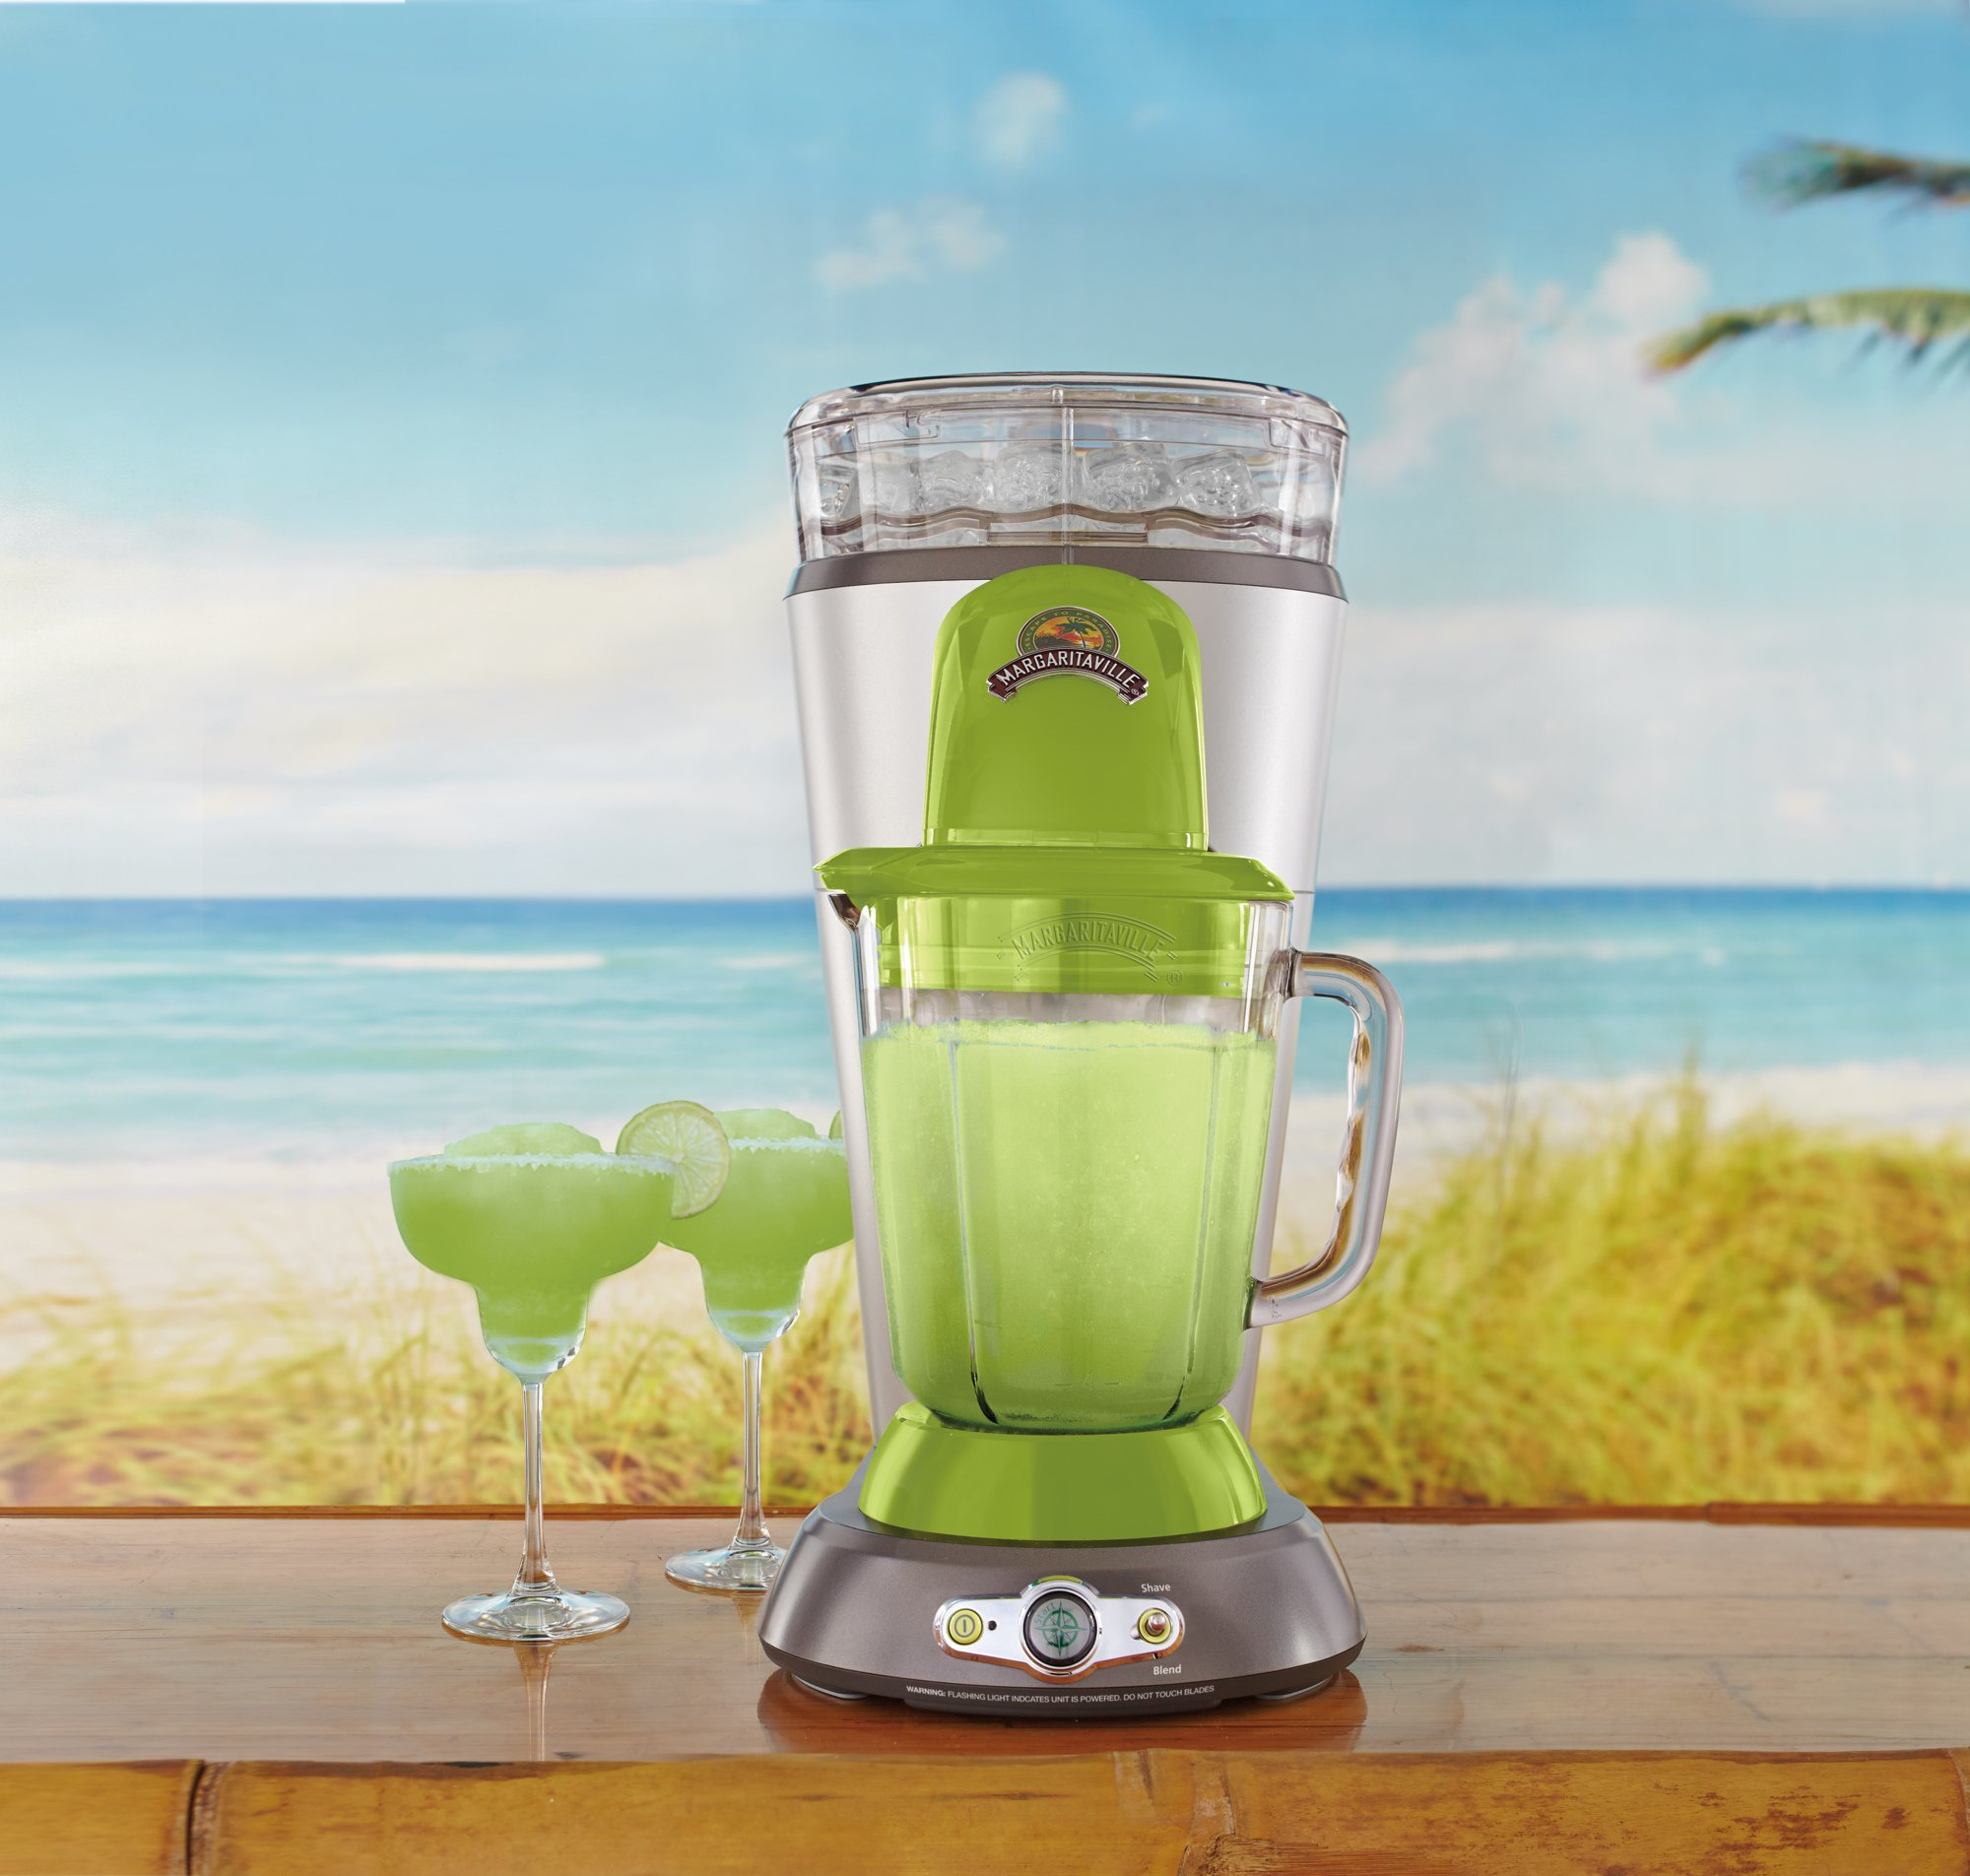 Margaritaville Bahamas Frozen Concoction Maker with No Brainer Mixer, DM0700 by Margaritaville (Image #2)